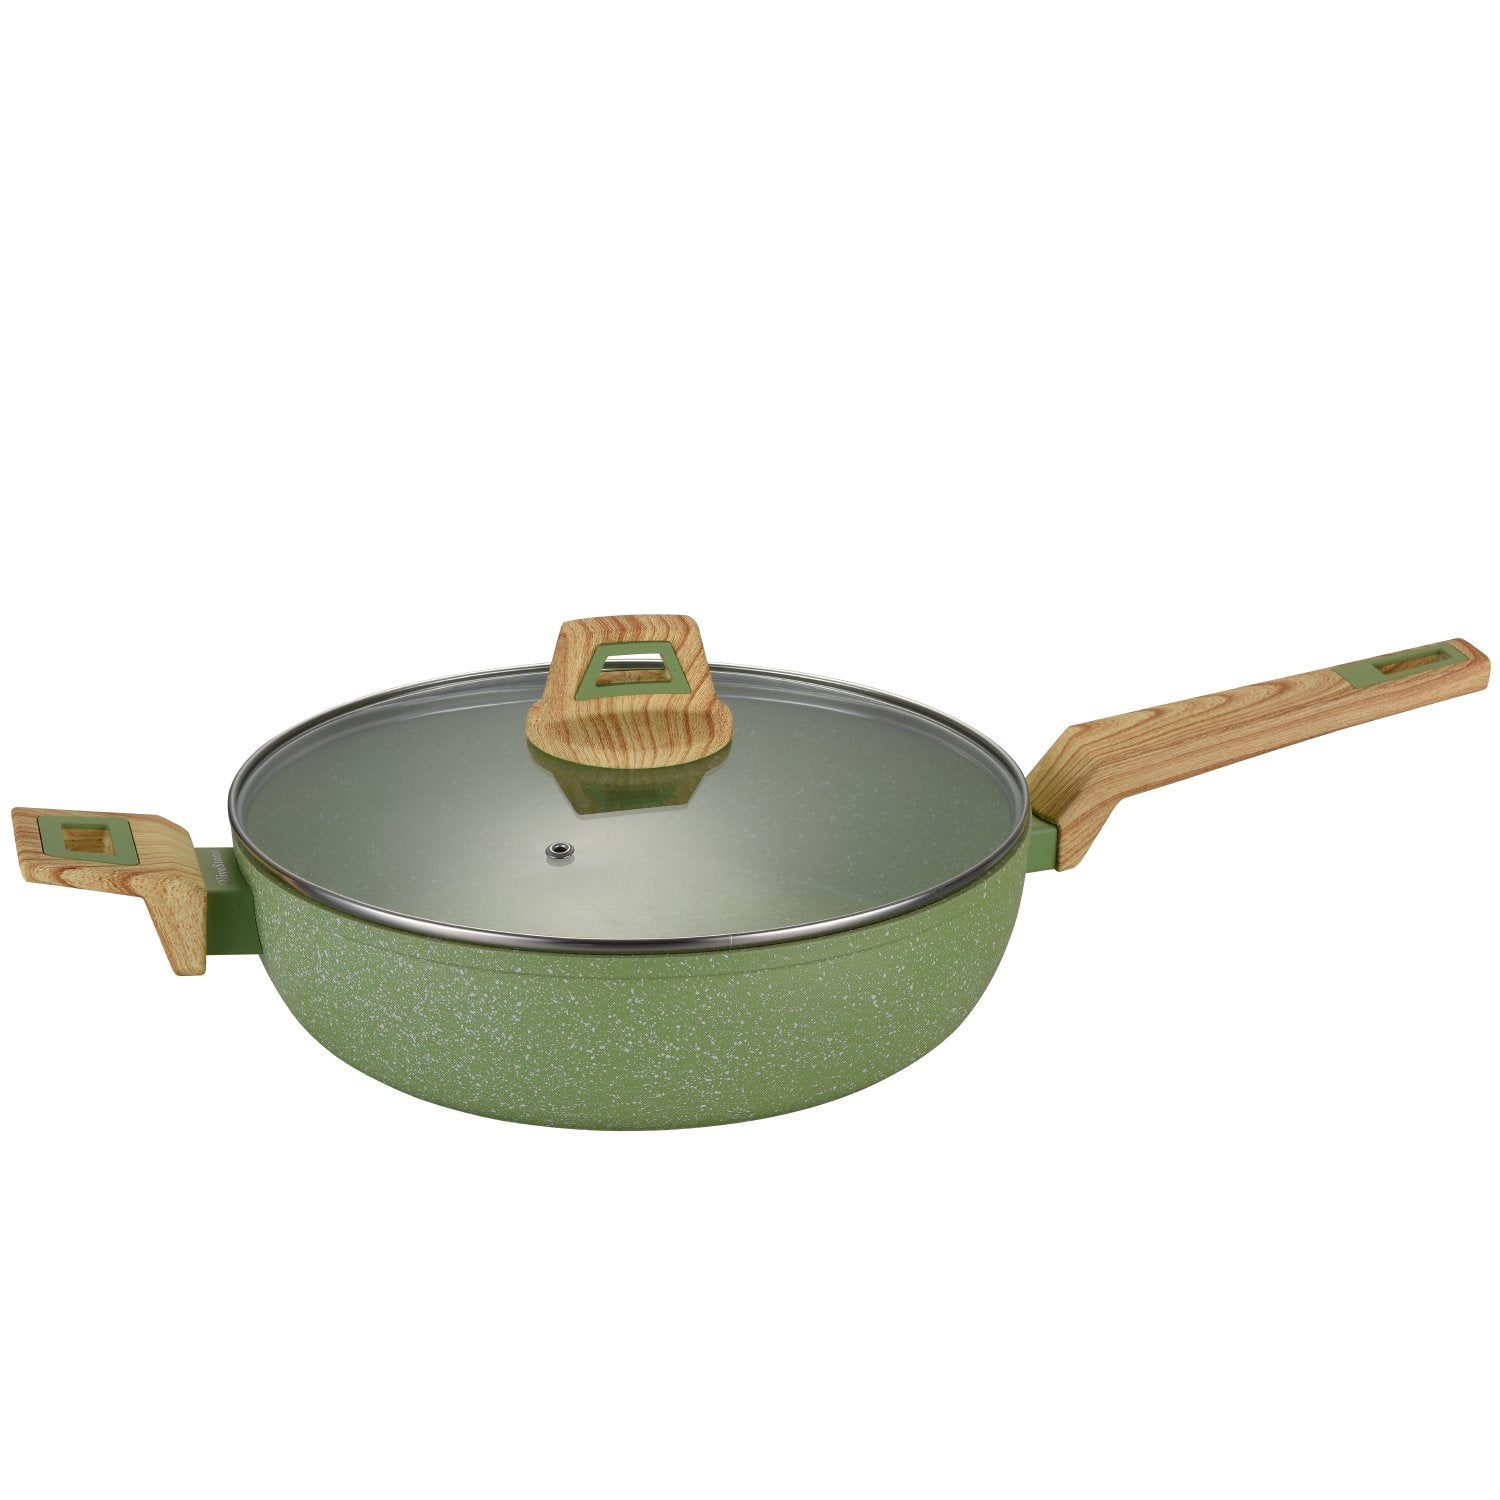 bpa free 11-Inch Non-Stick Coated Forged Aluminum Induction Friendly Round Saute Pan with Glass Lid - Avocado Green